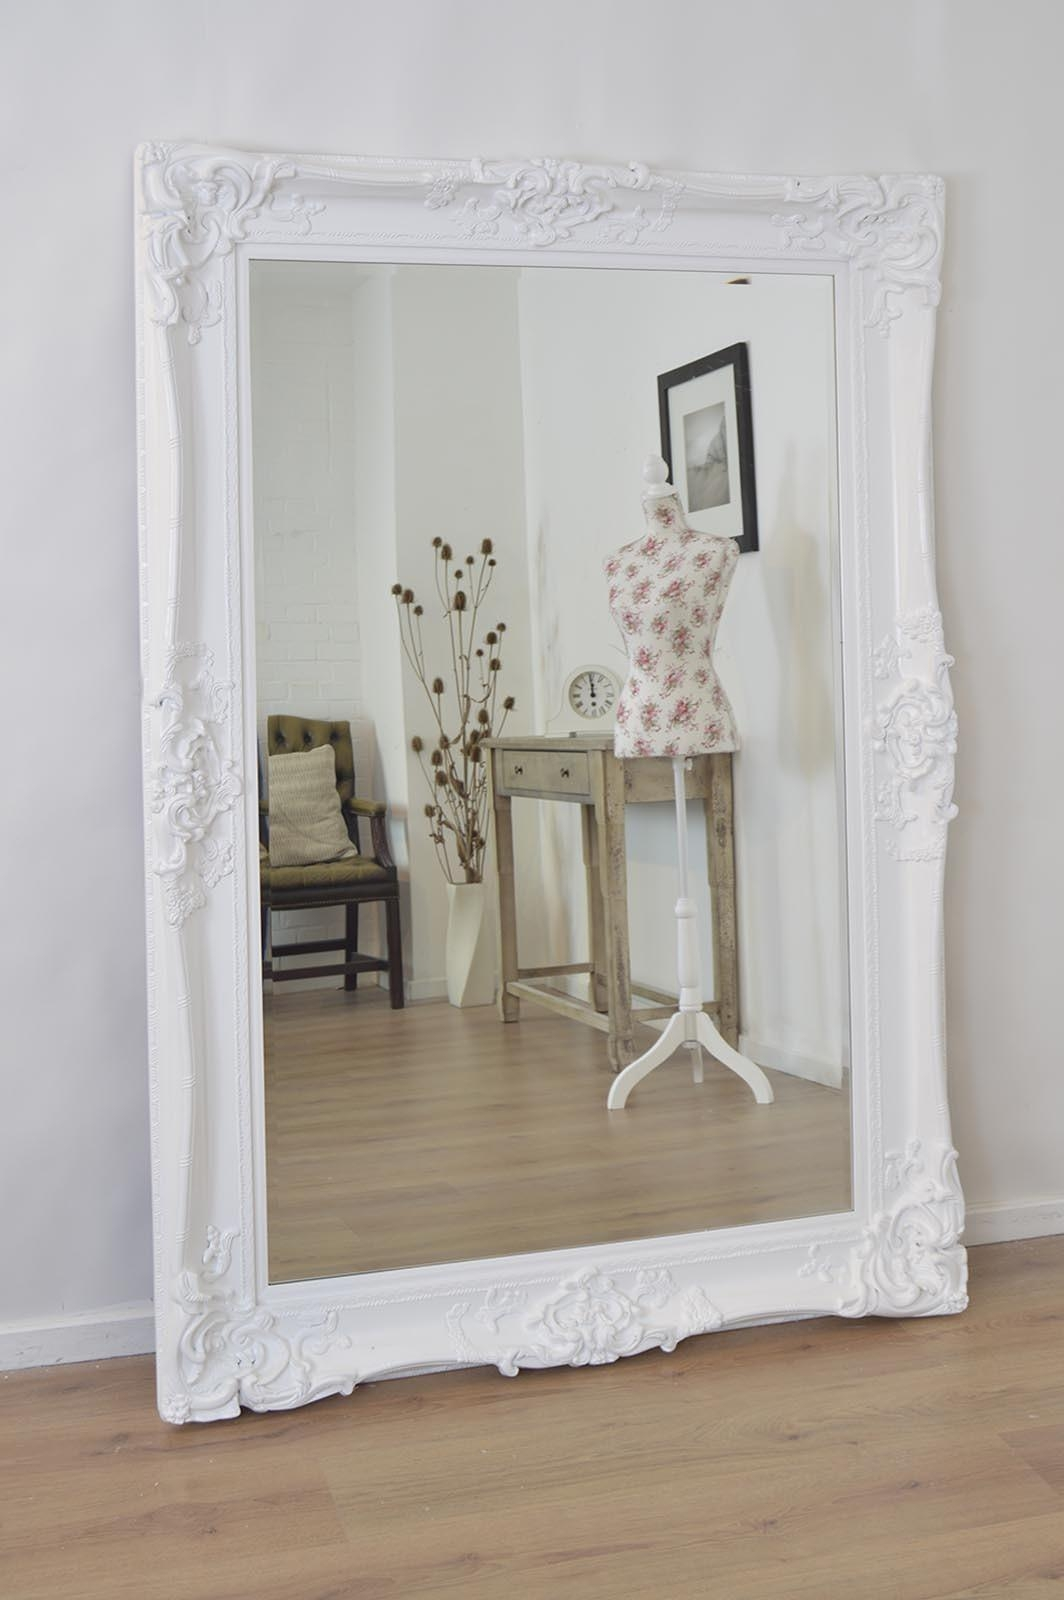 White Distressed Shabby Chic Mirror | Best Home Magazine Gallery With Regard To Shabby Chic Mirror White (View 2 of 20)